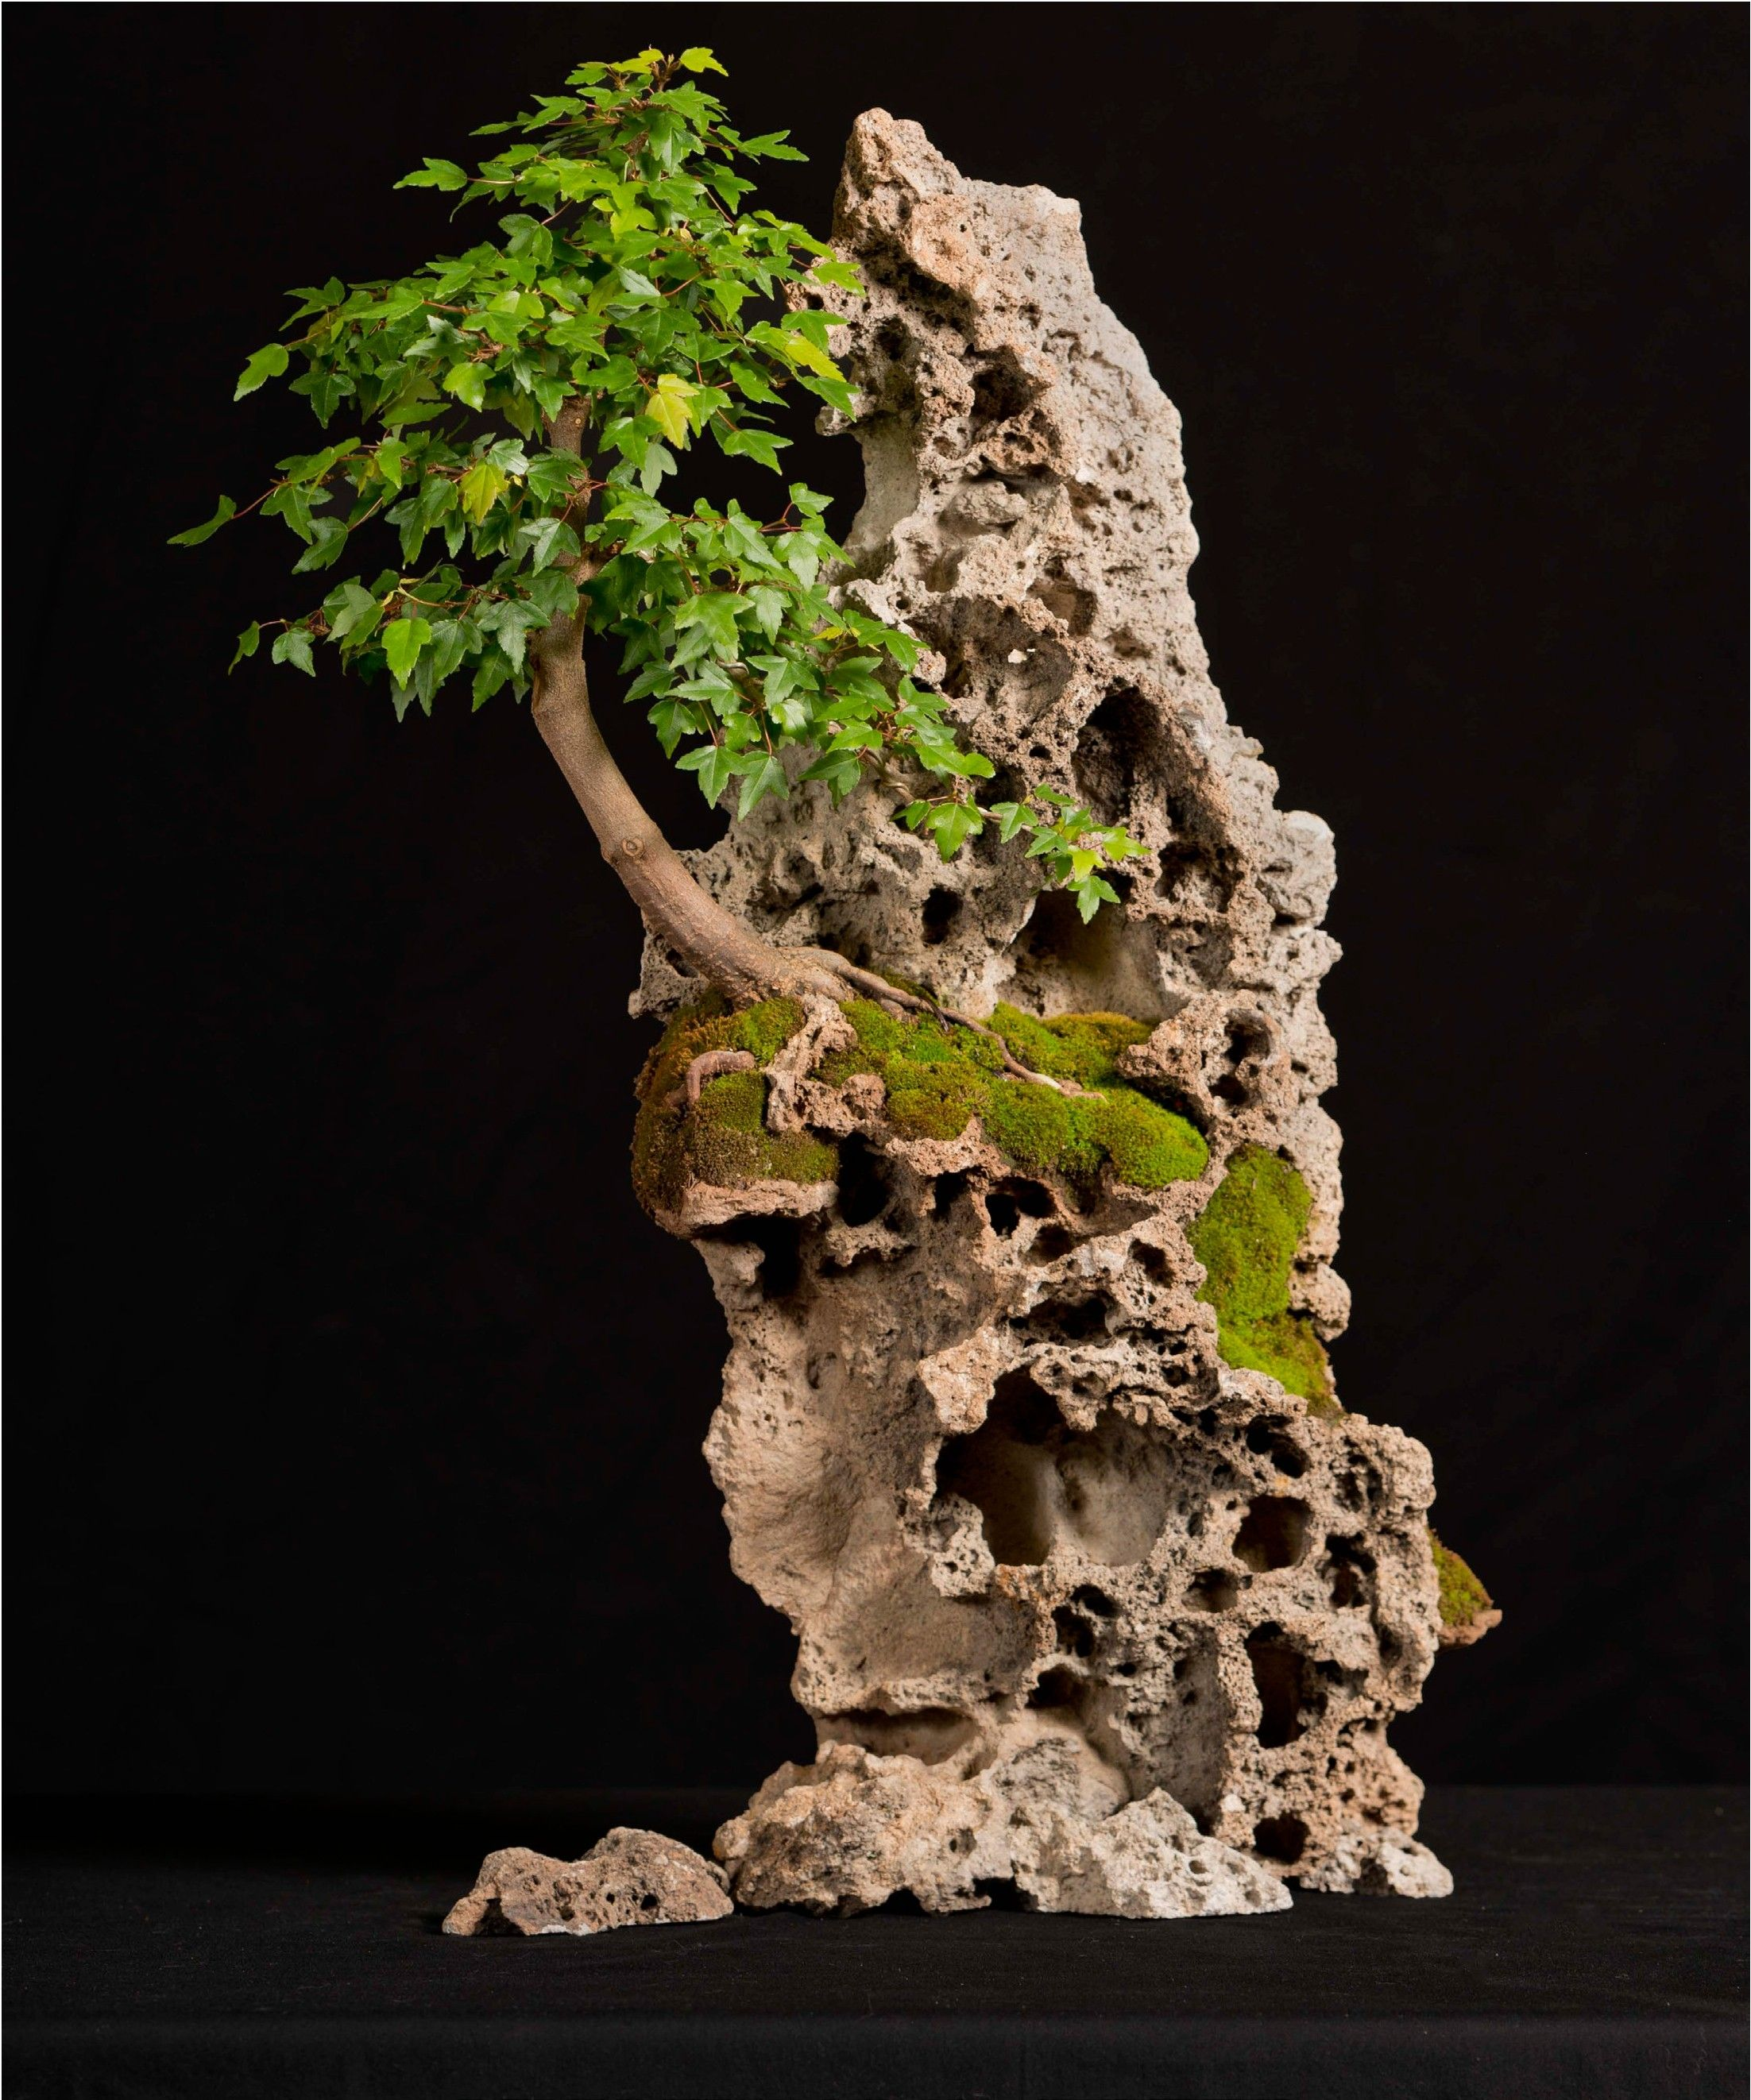 Acer on rock decor piatra pinterest bonsai giardino - Alberelli da giardino ...